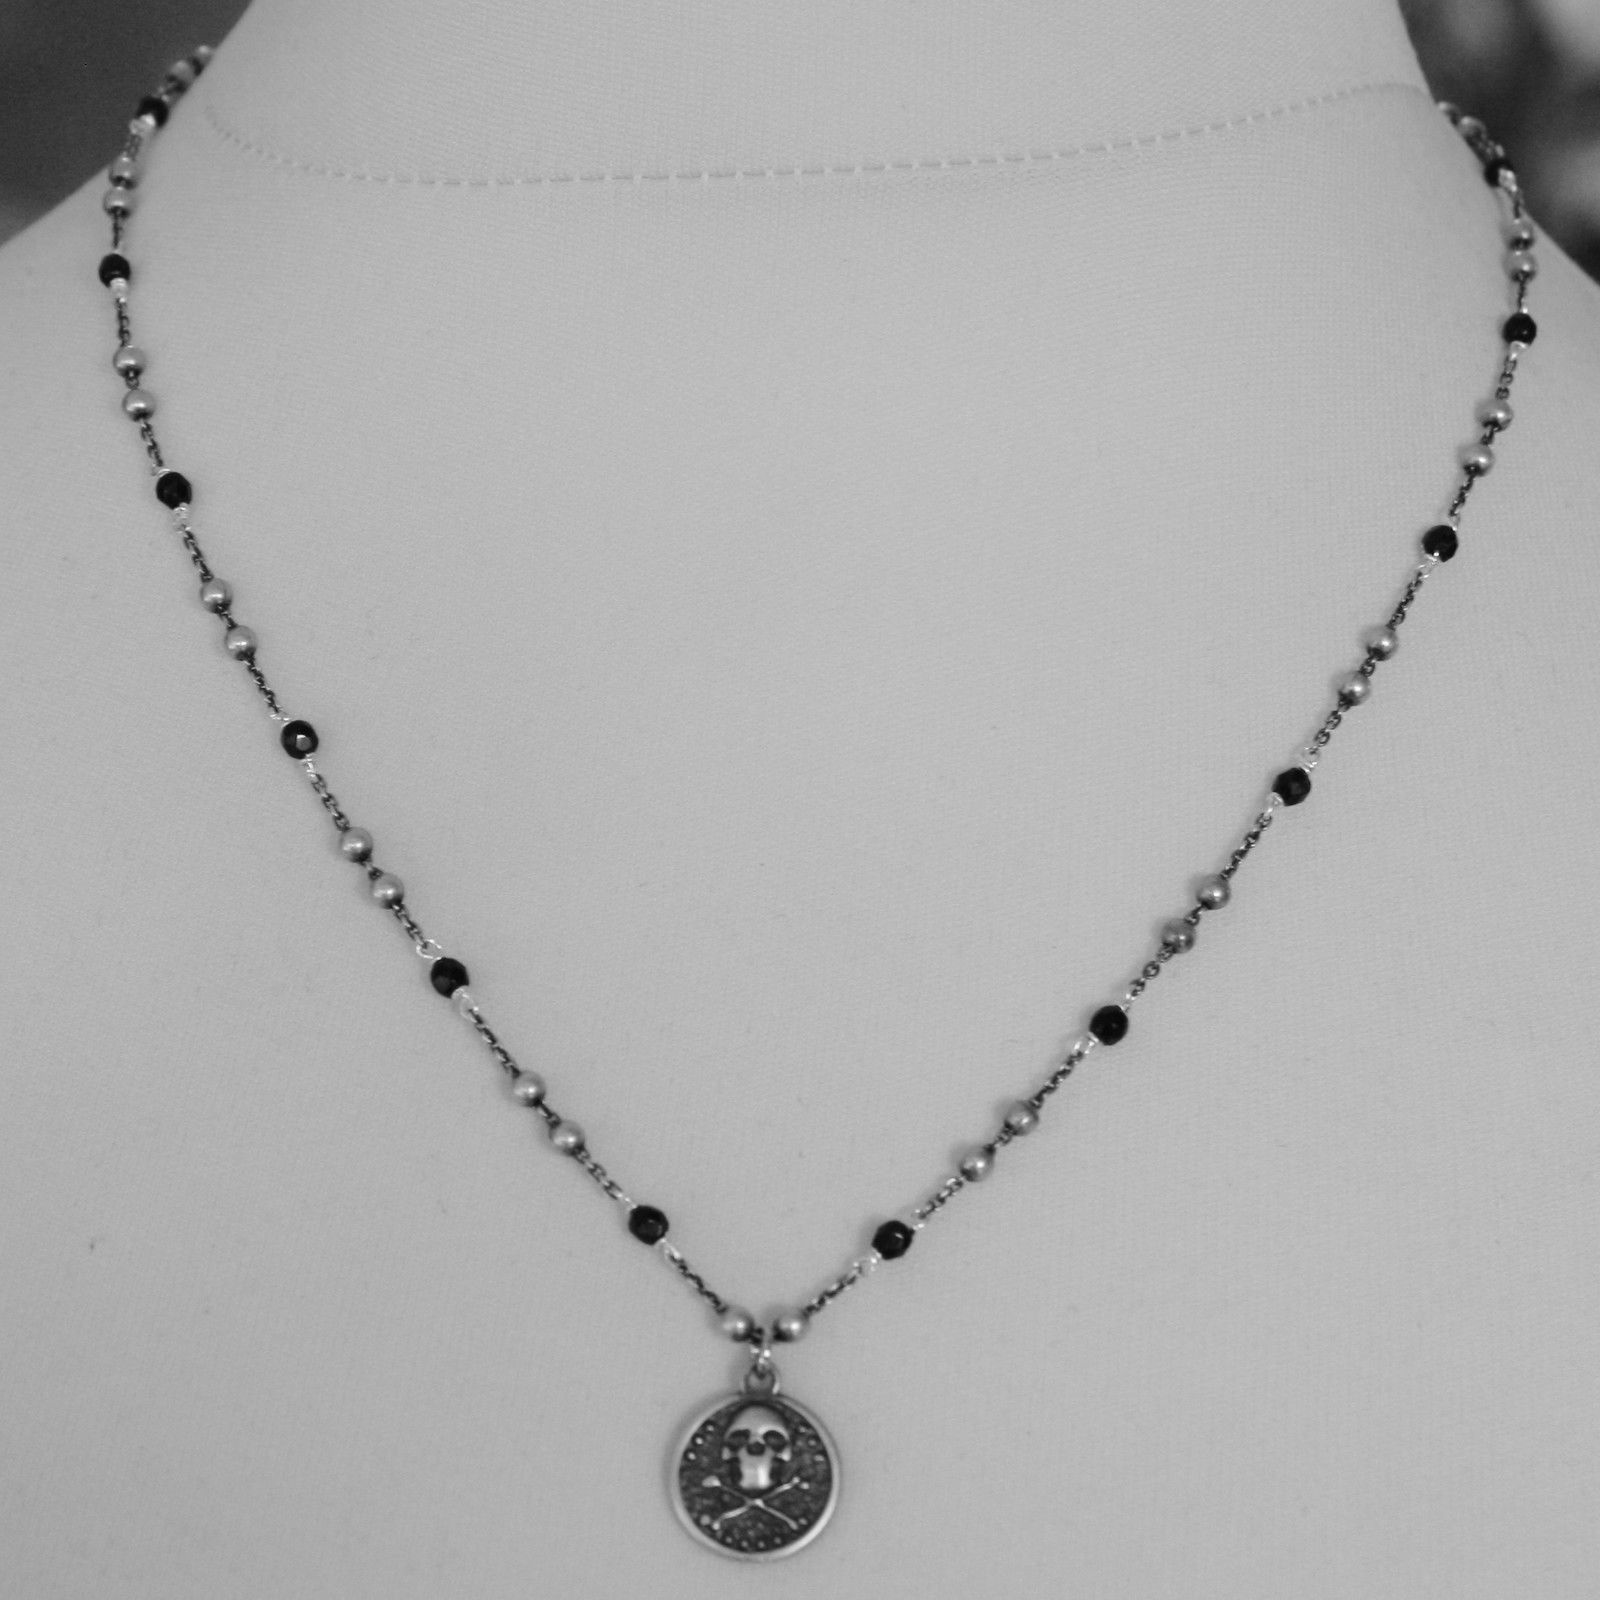 925 BURNISHED SILVER NECKLACE WITH PIRATES SKULL BONE DISC PENDANT MADE IN ITALY